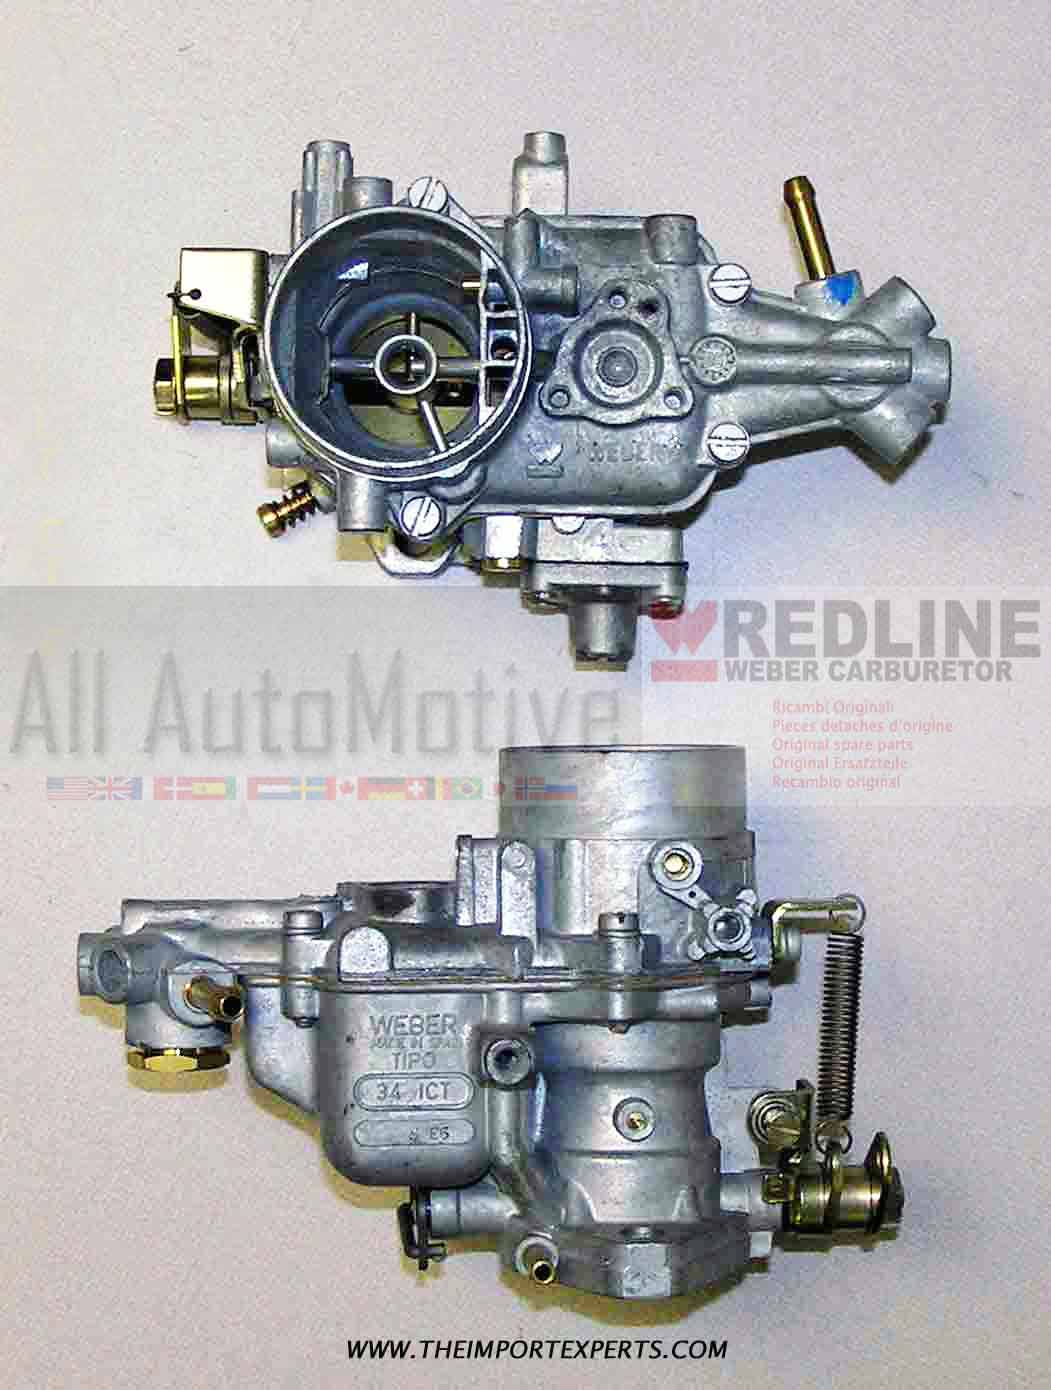 Dubbele Webers Weber Redline 34 Ict 34 Ich Dual Carburetor Carb Jetting